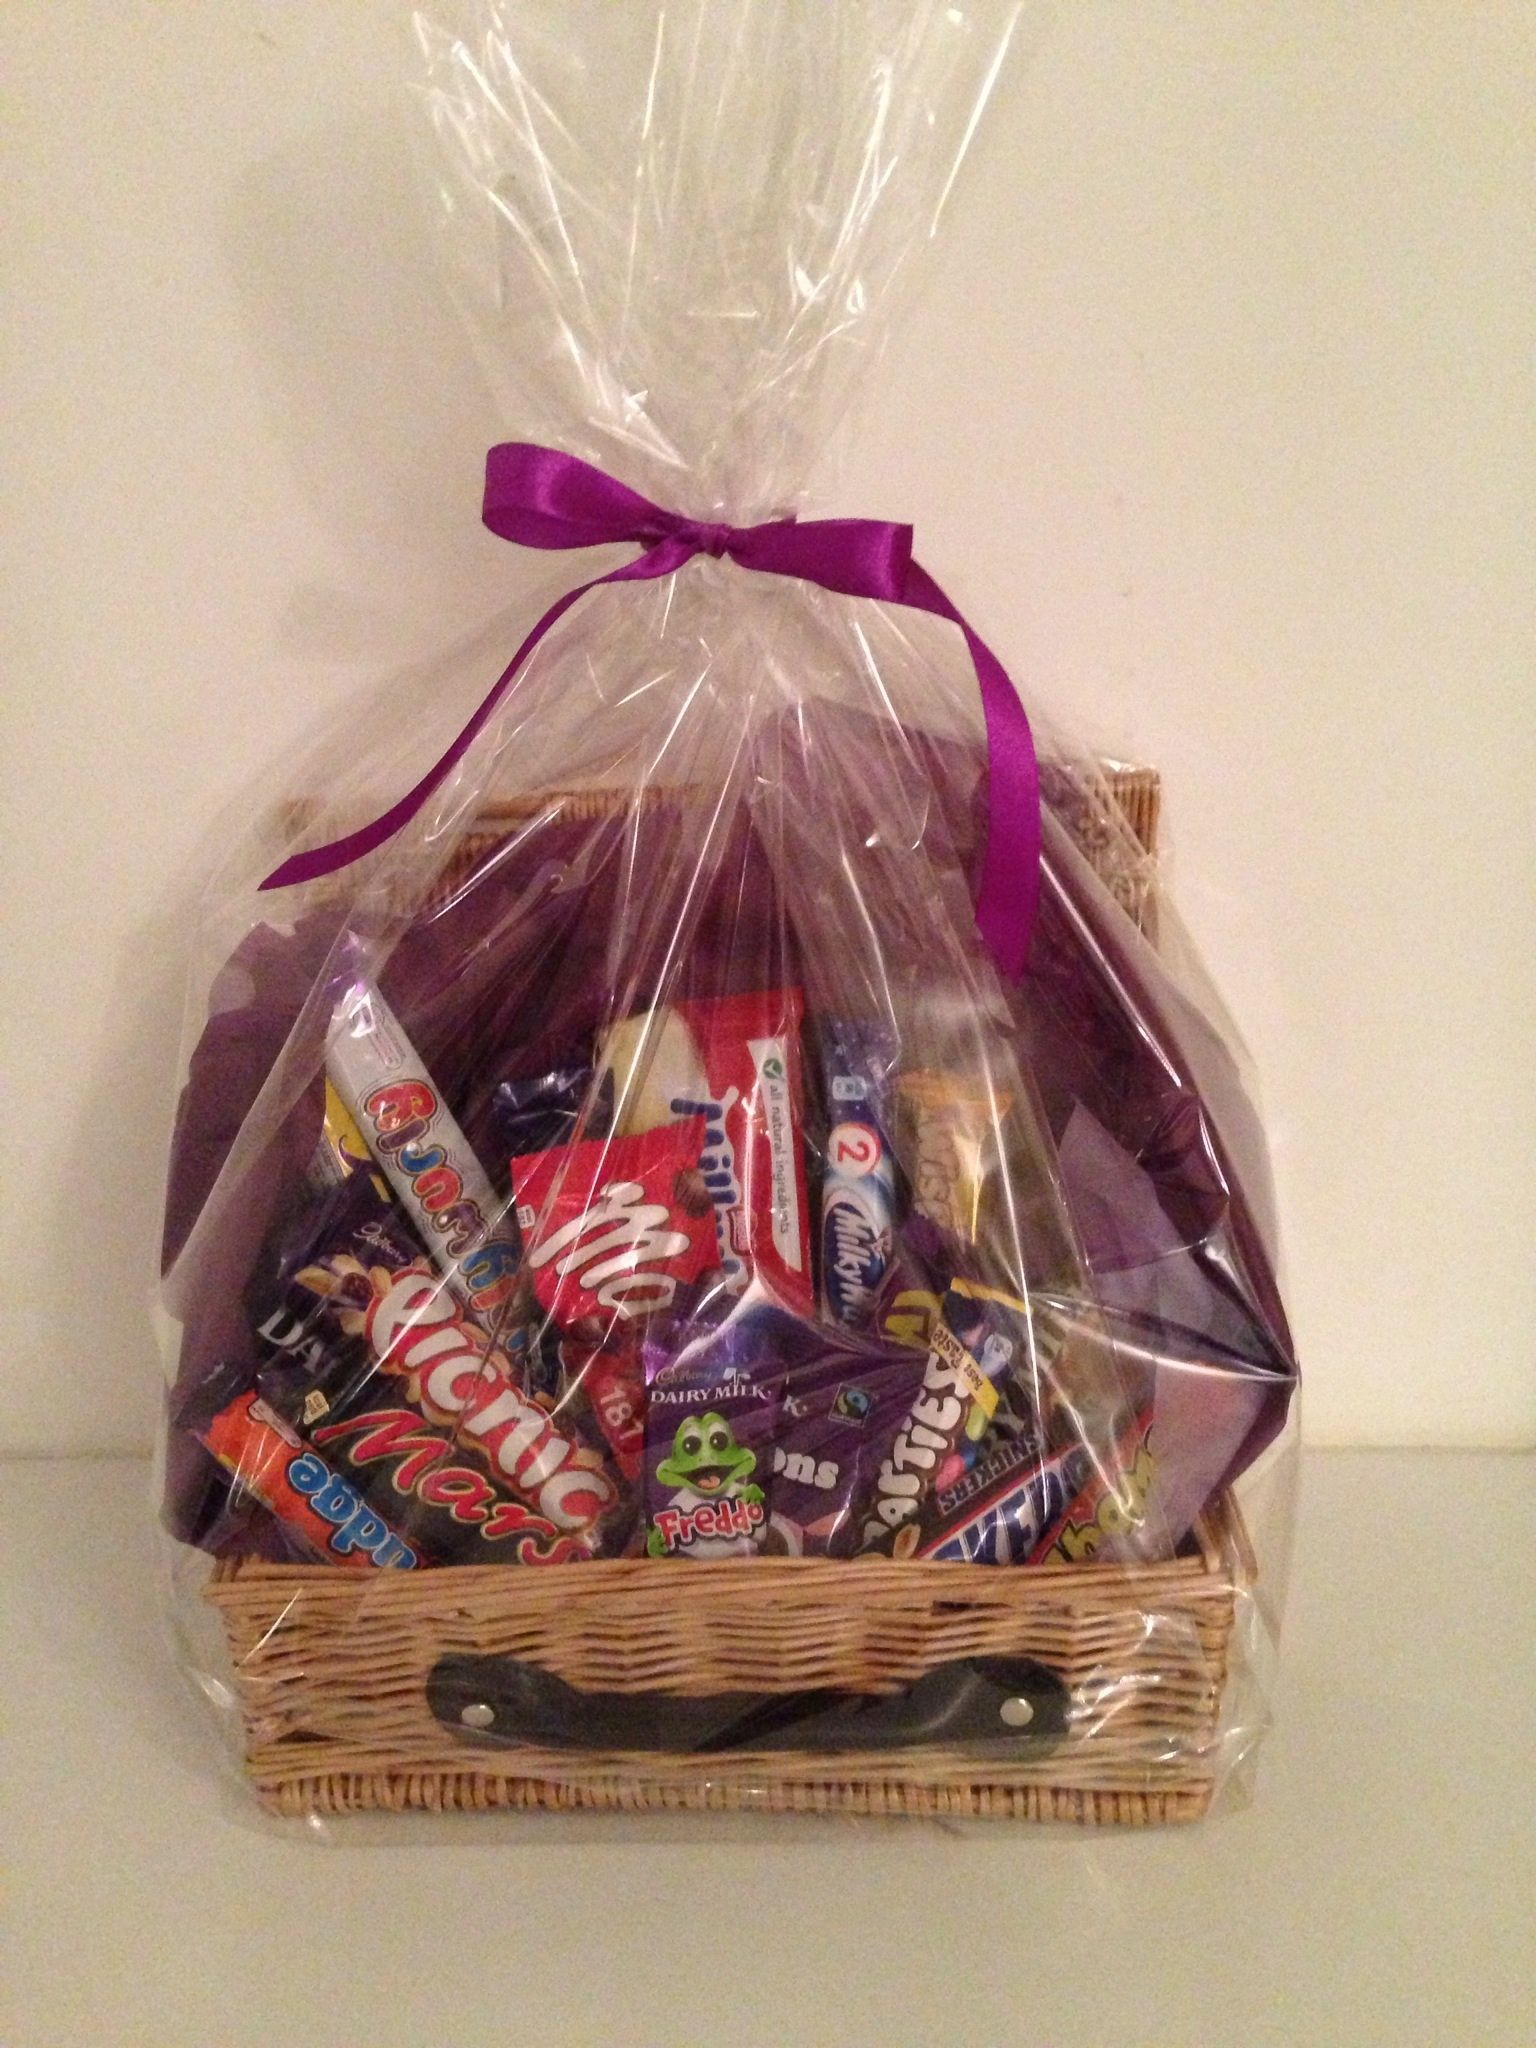 d74a102a1fb7 Chocolate hamper | Gifts | Christmas gifts for girlfriend, Chocolate ...